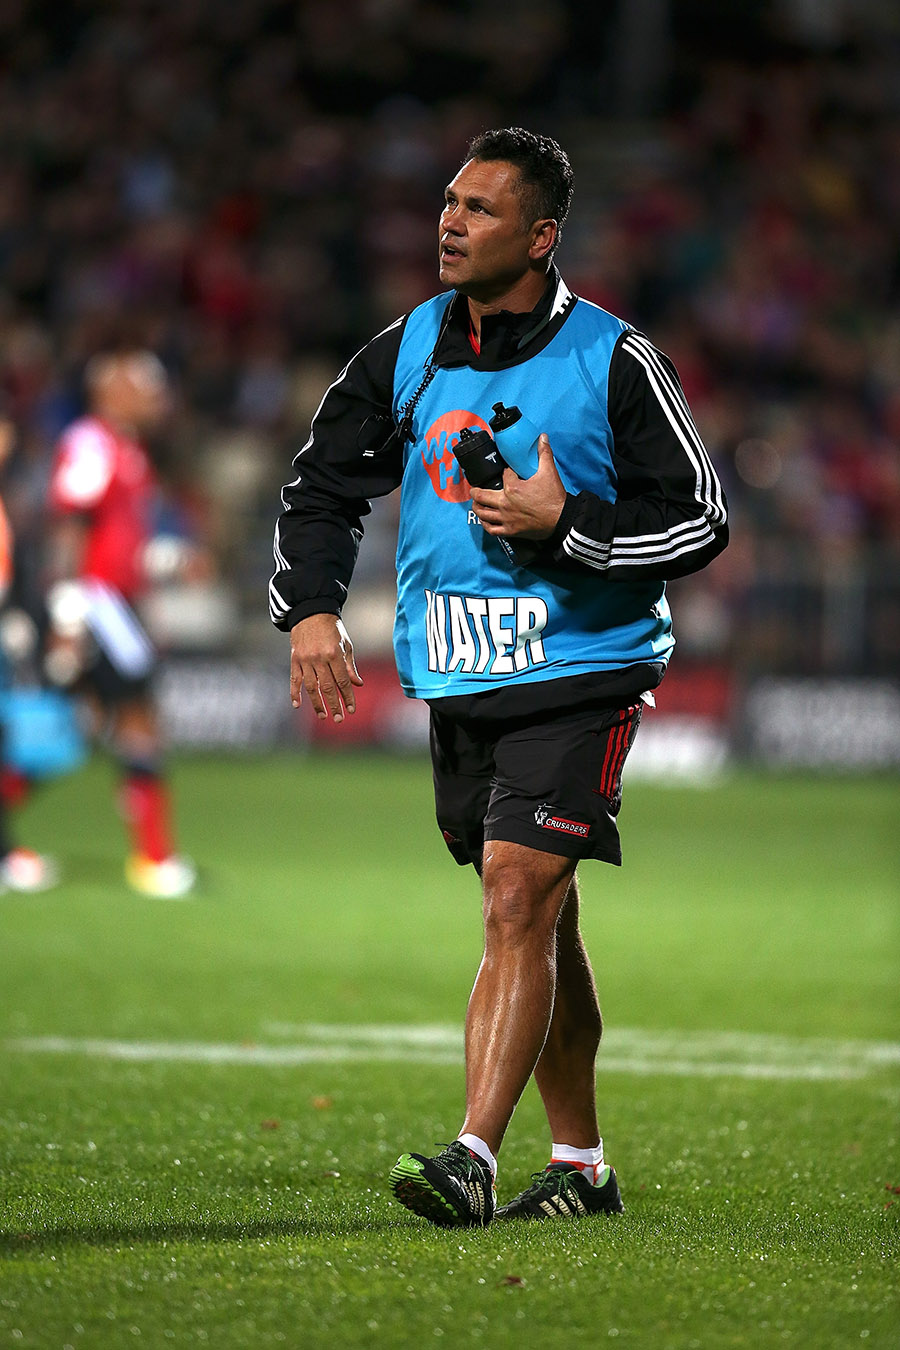 Tabai Matson, Crusaders assistant coach and waterboy